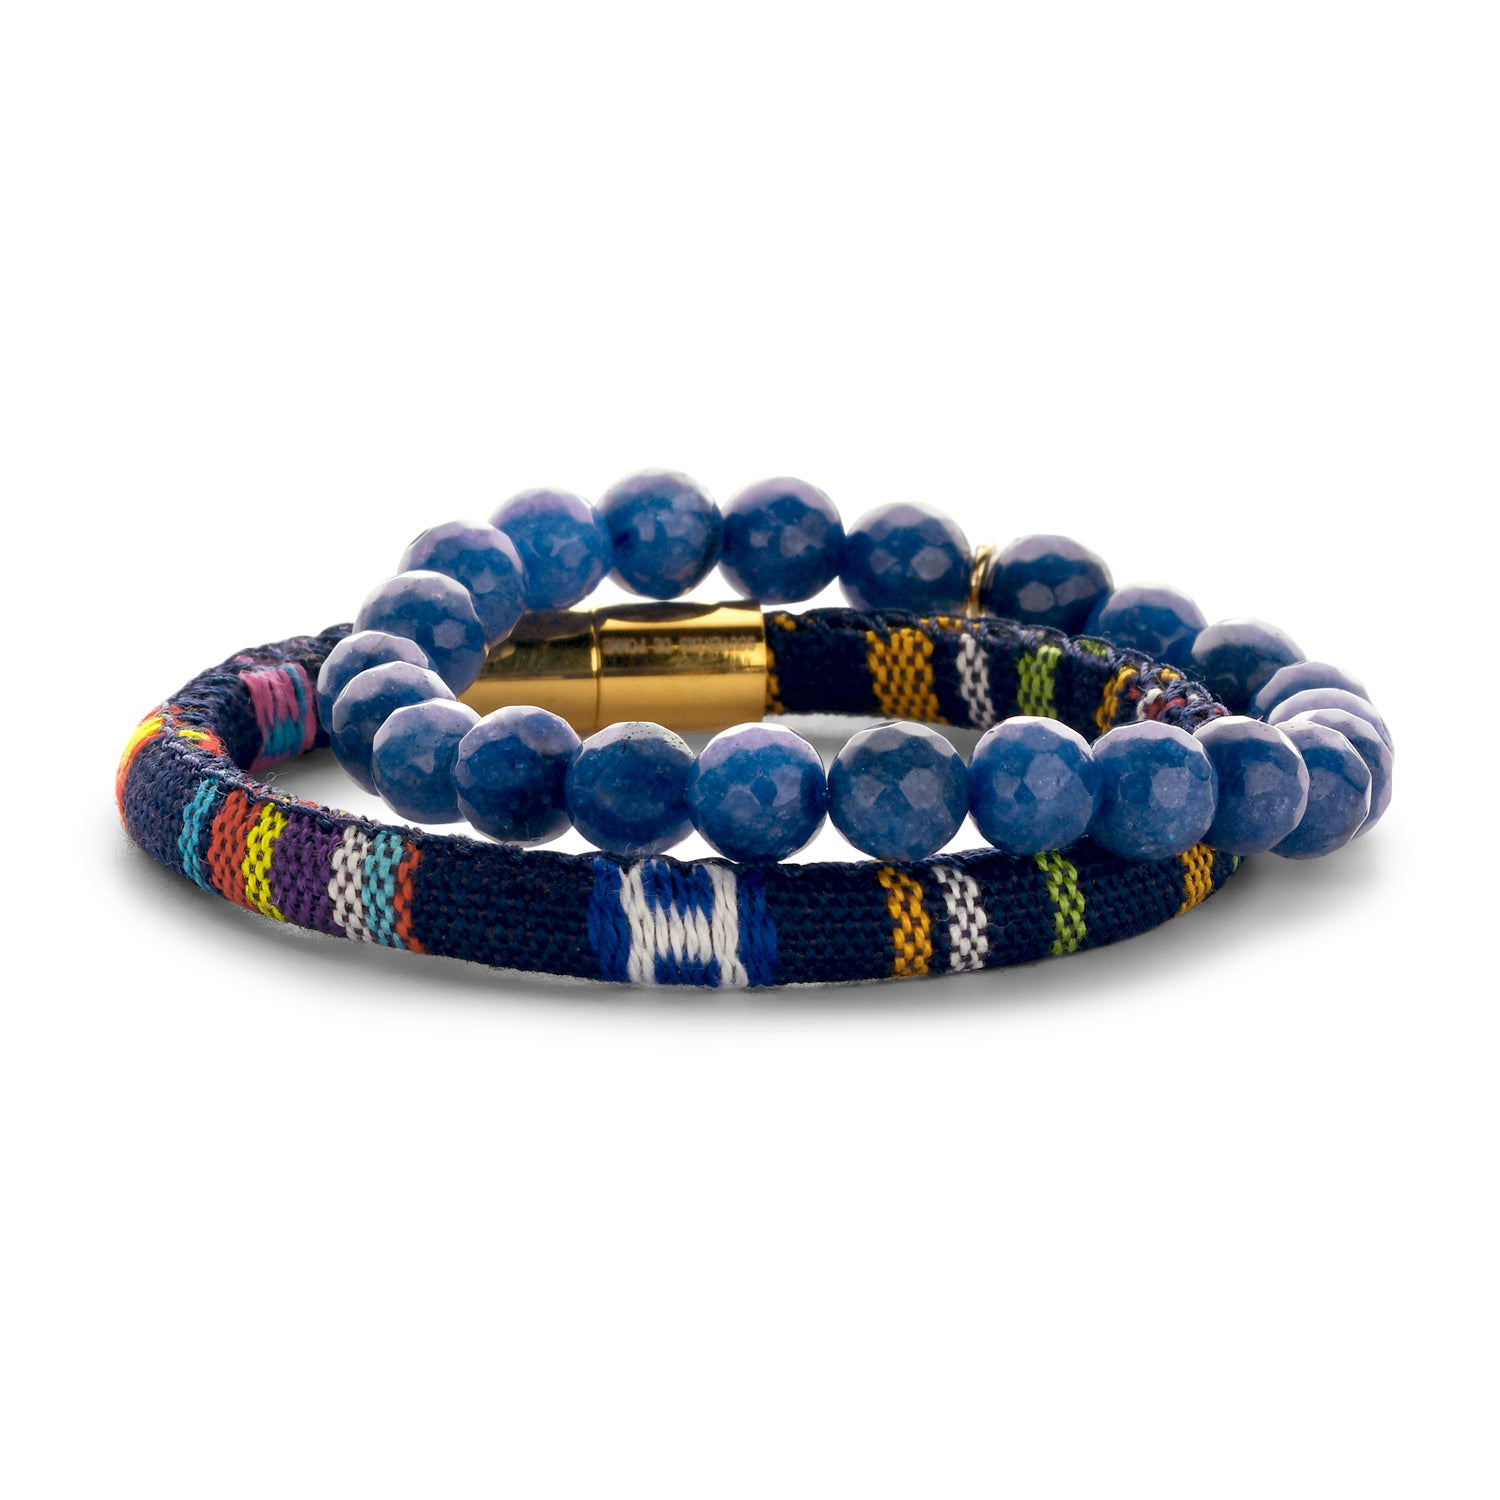 Set Peru Friendship bracelet royal blue